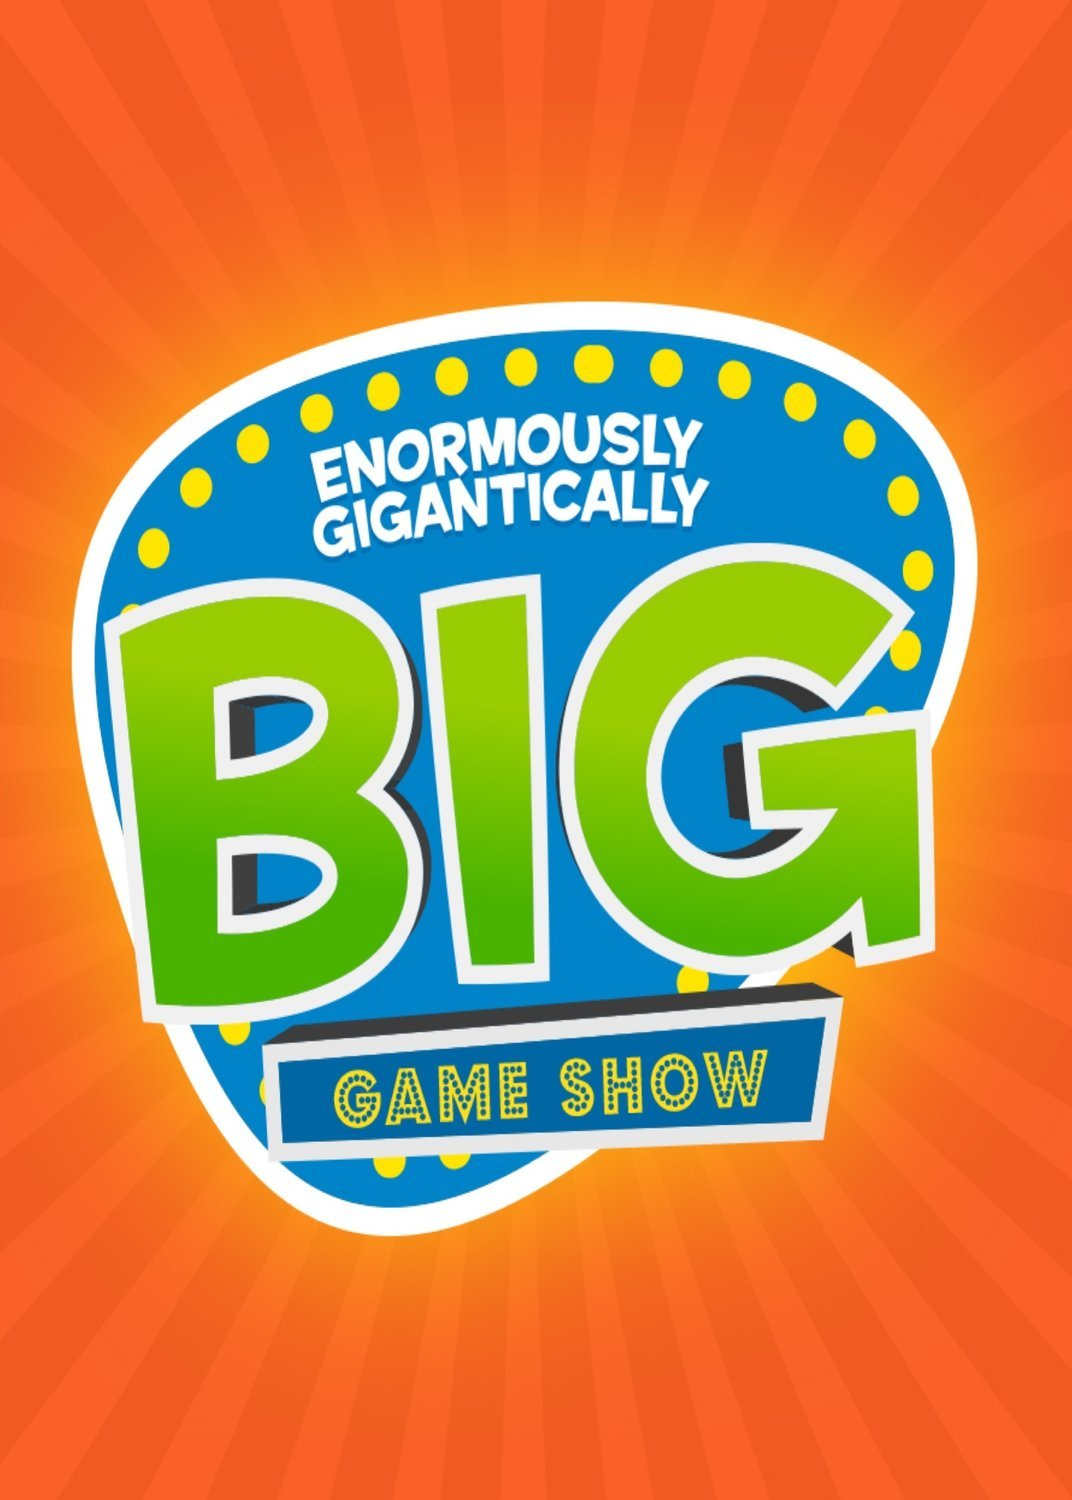 THE ENORMOUSLY GIGANTIALLY BIG GAME SHOW (worship series)